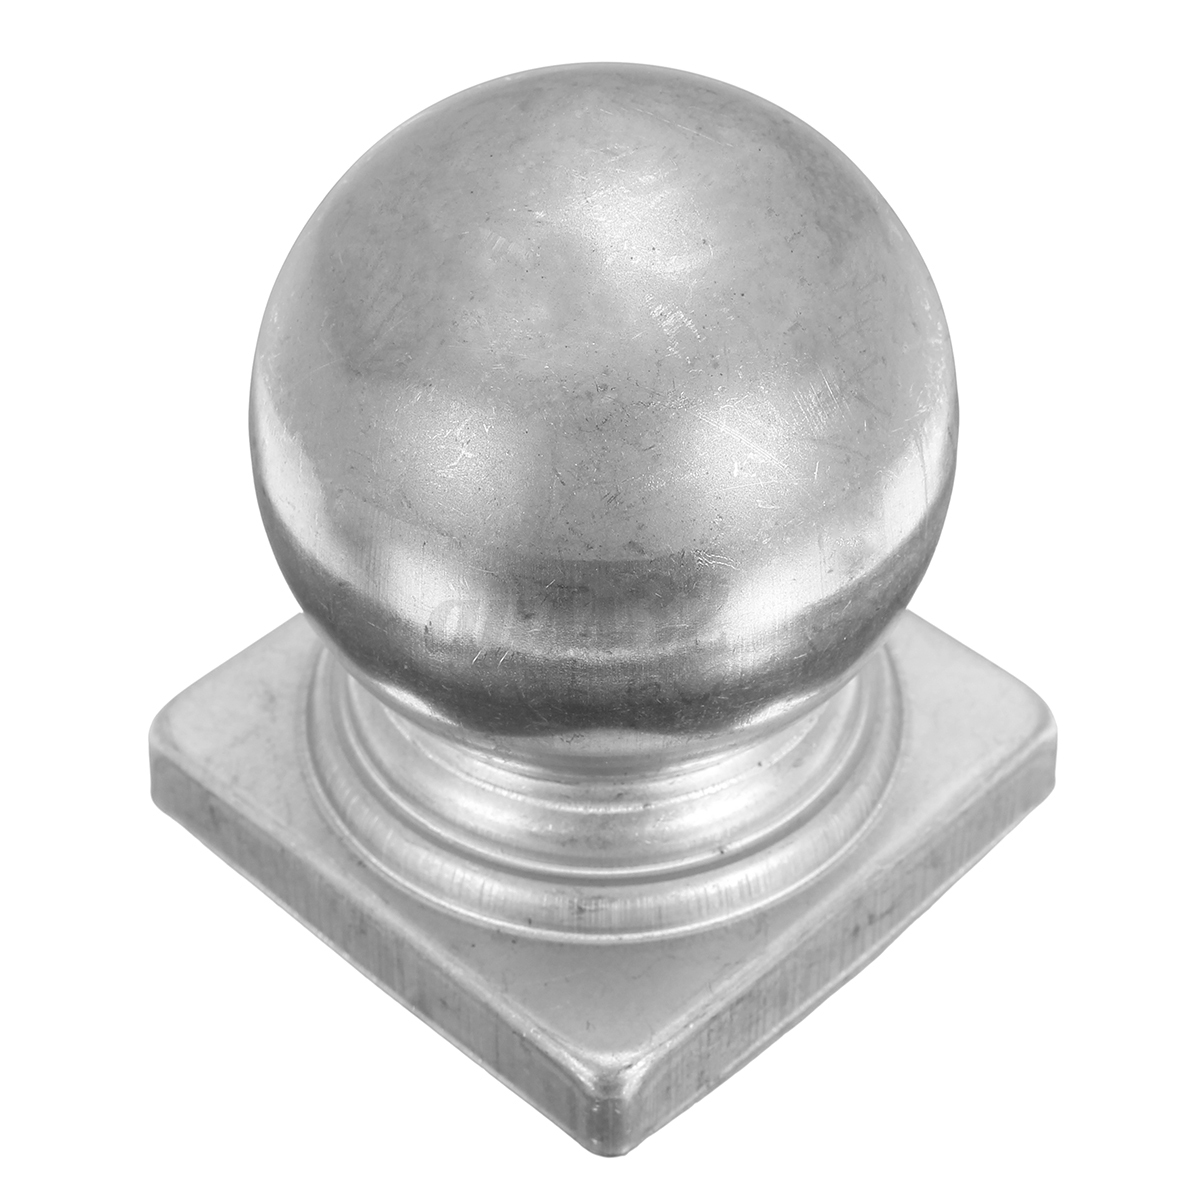 Mm silver metal square round finial gate fence